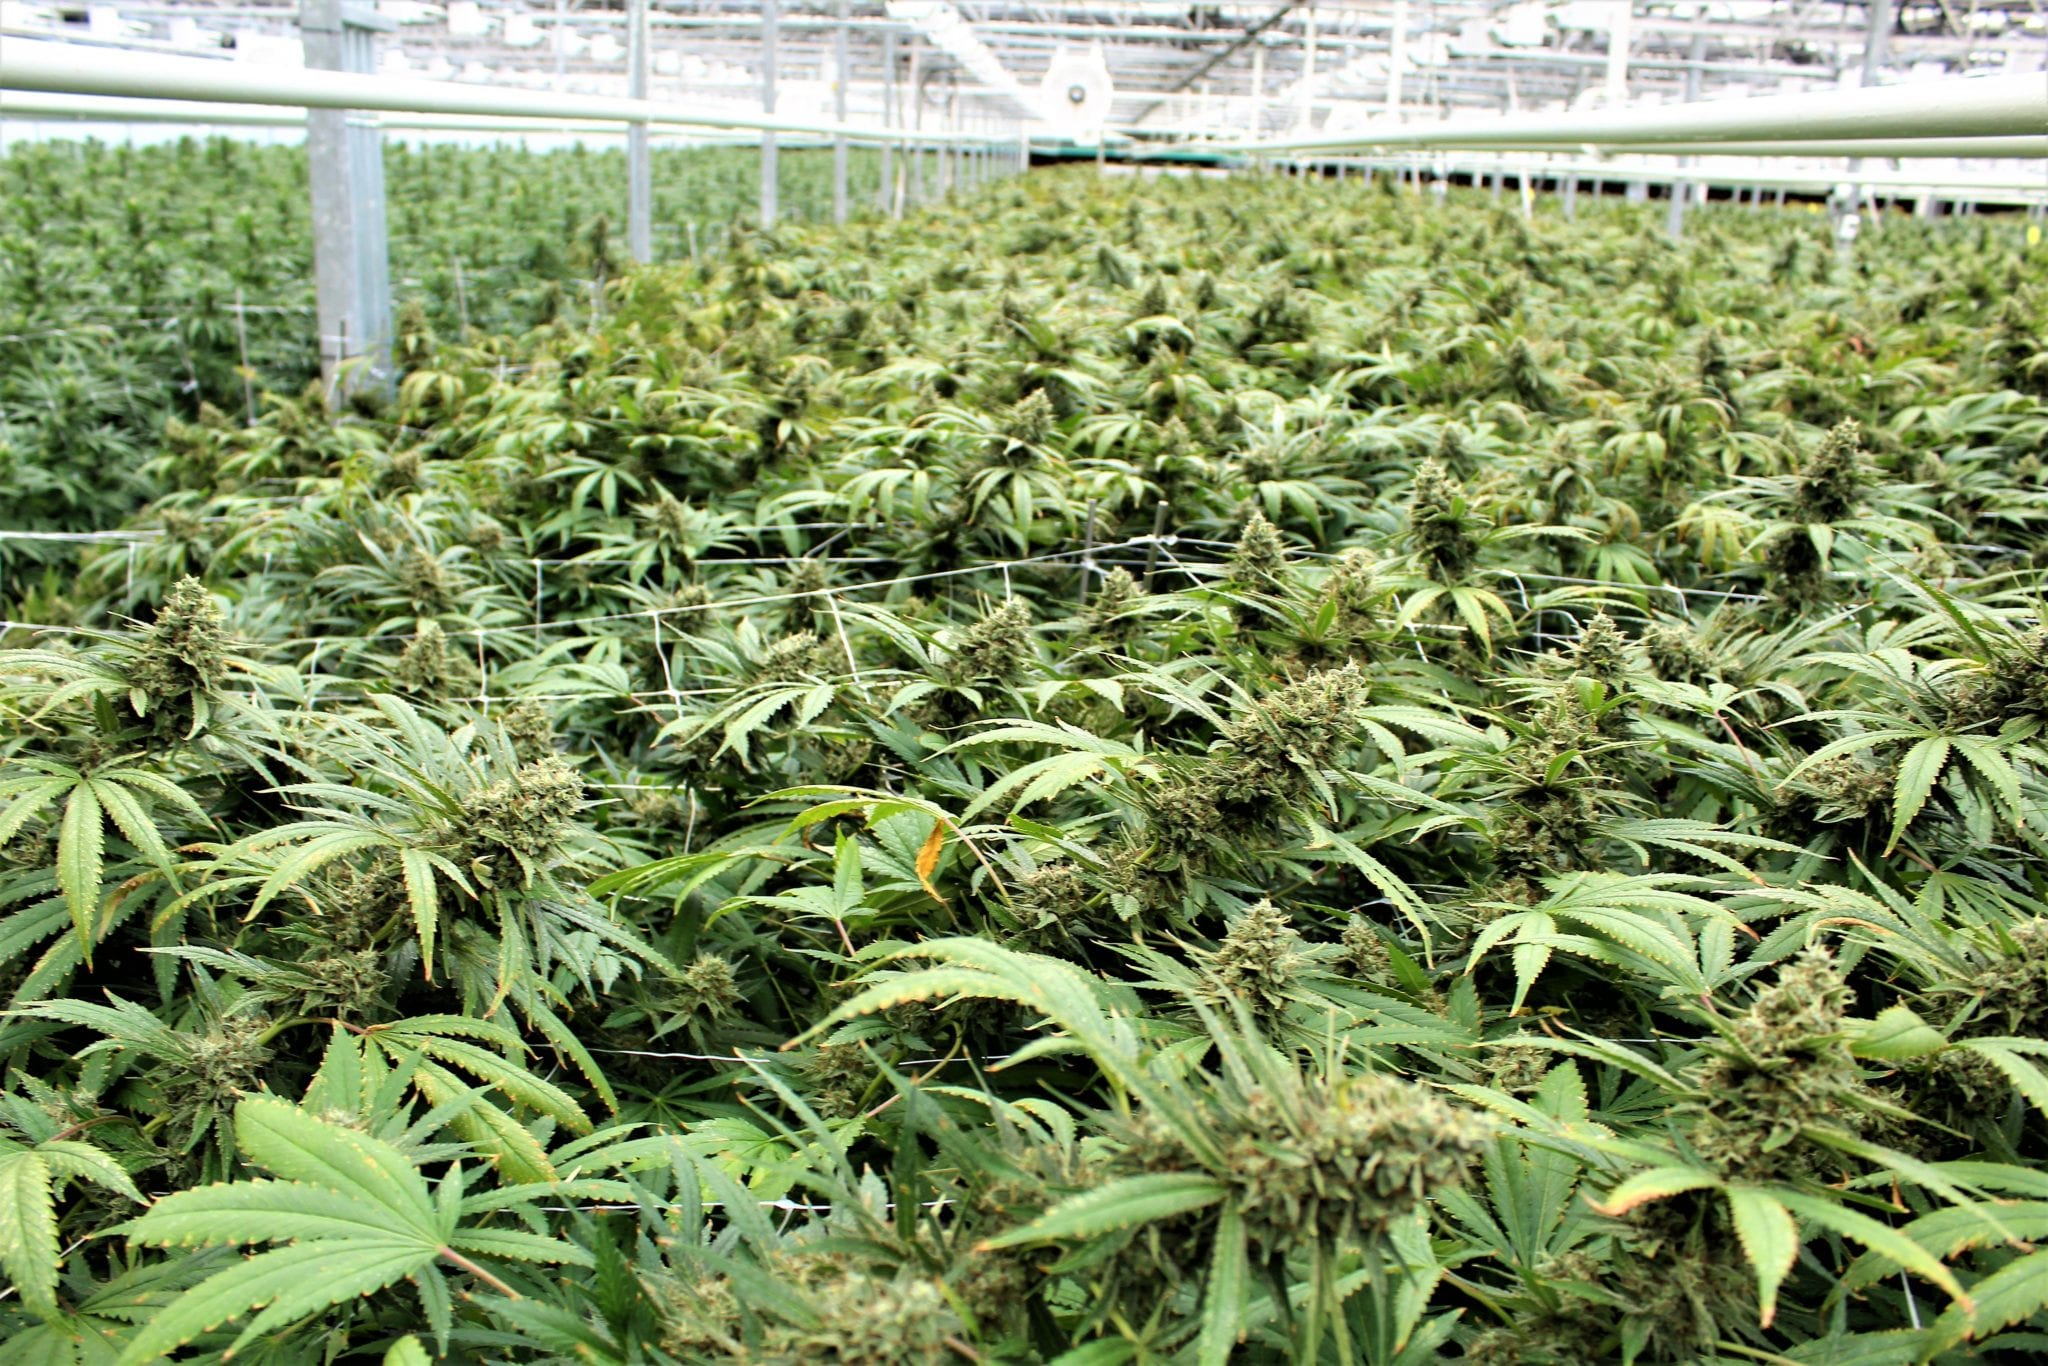 CannTrust fails to file financial statements, risks losing TSX listing